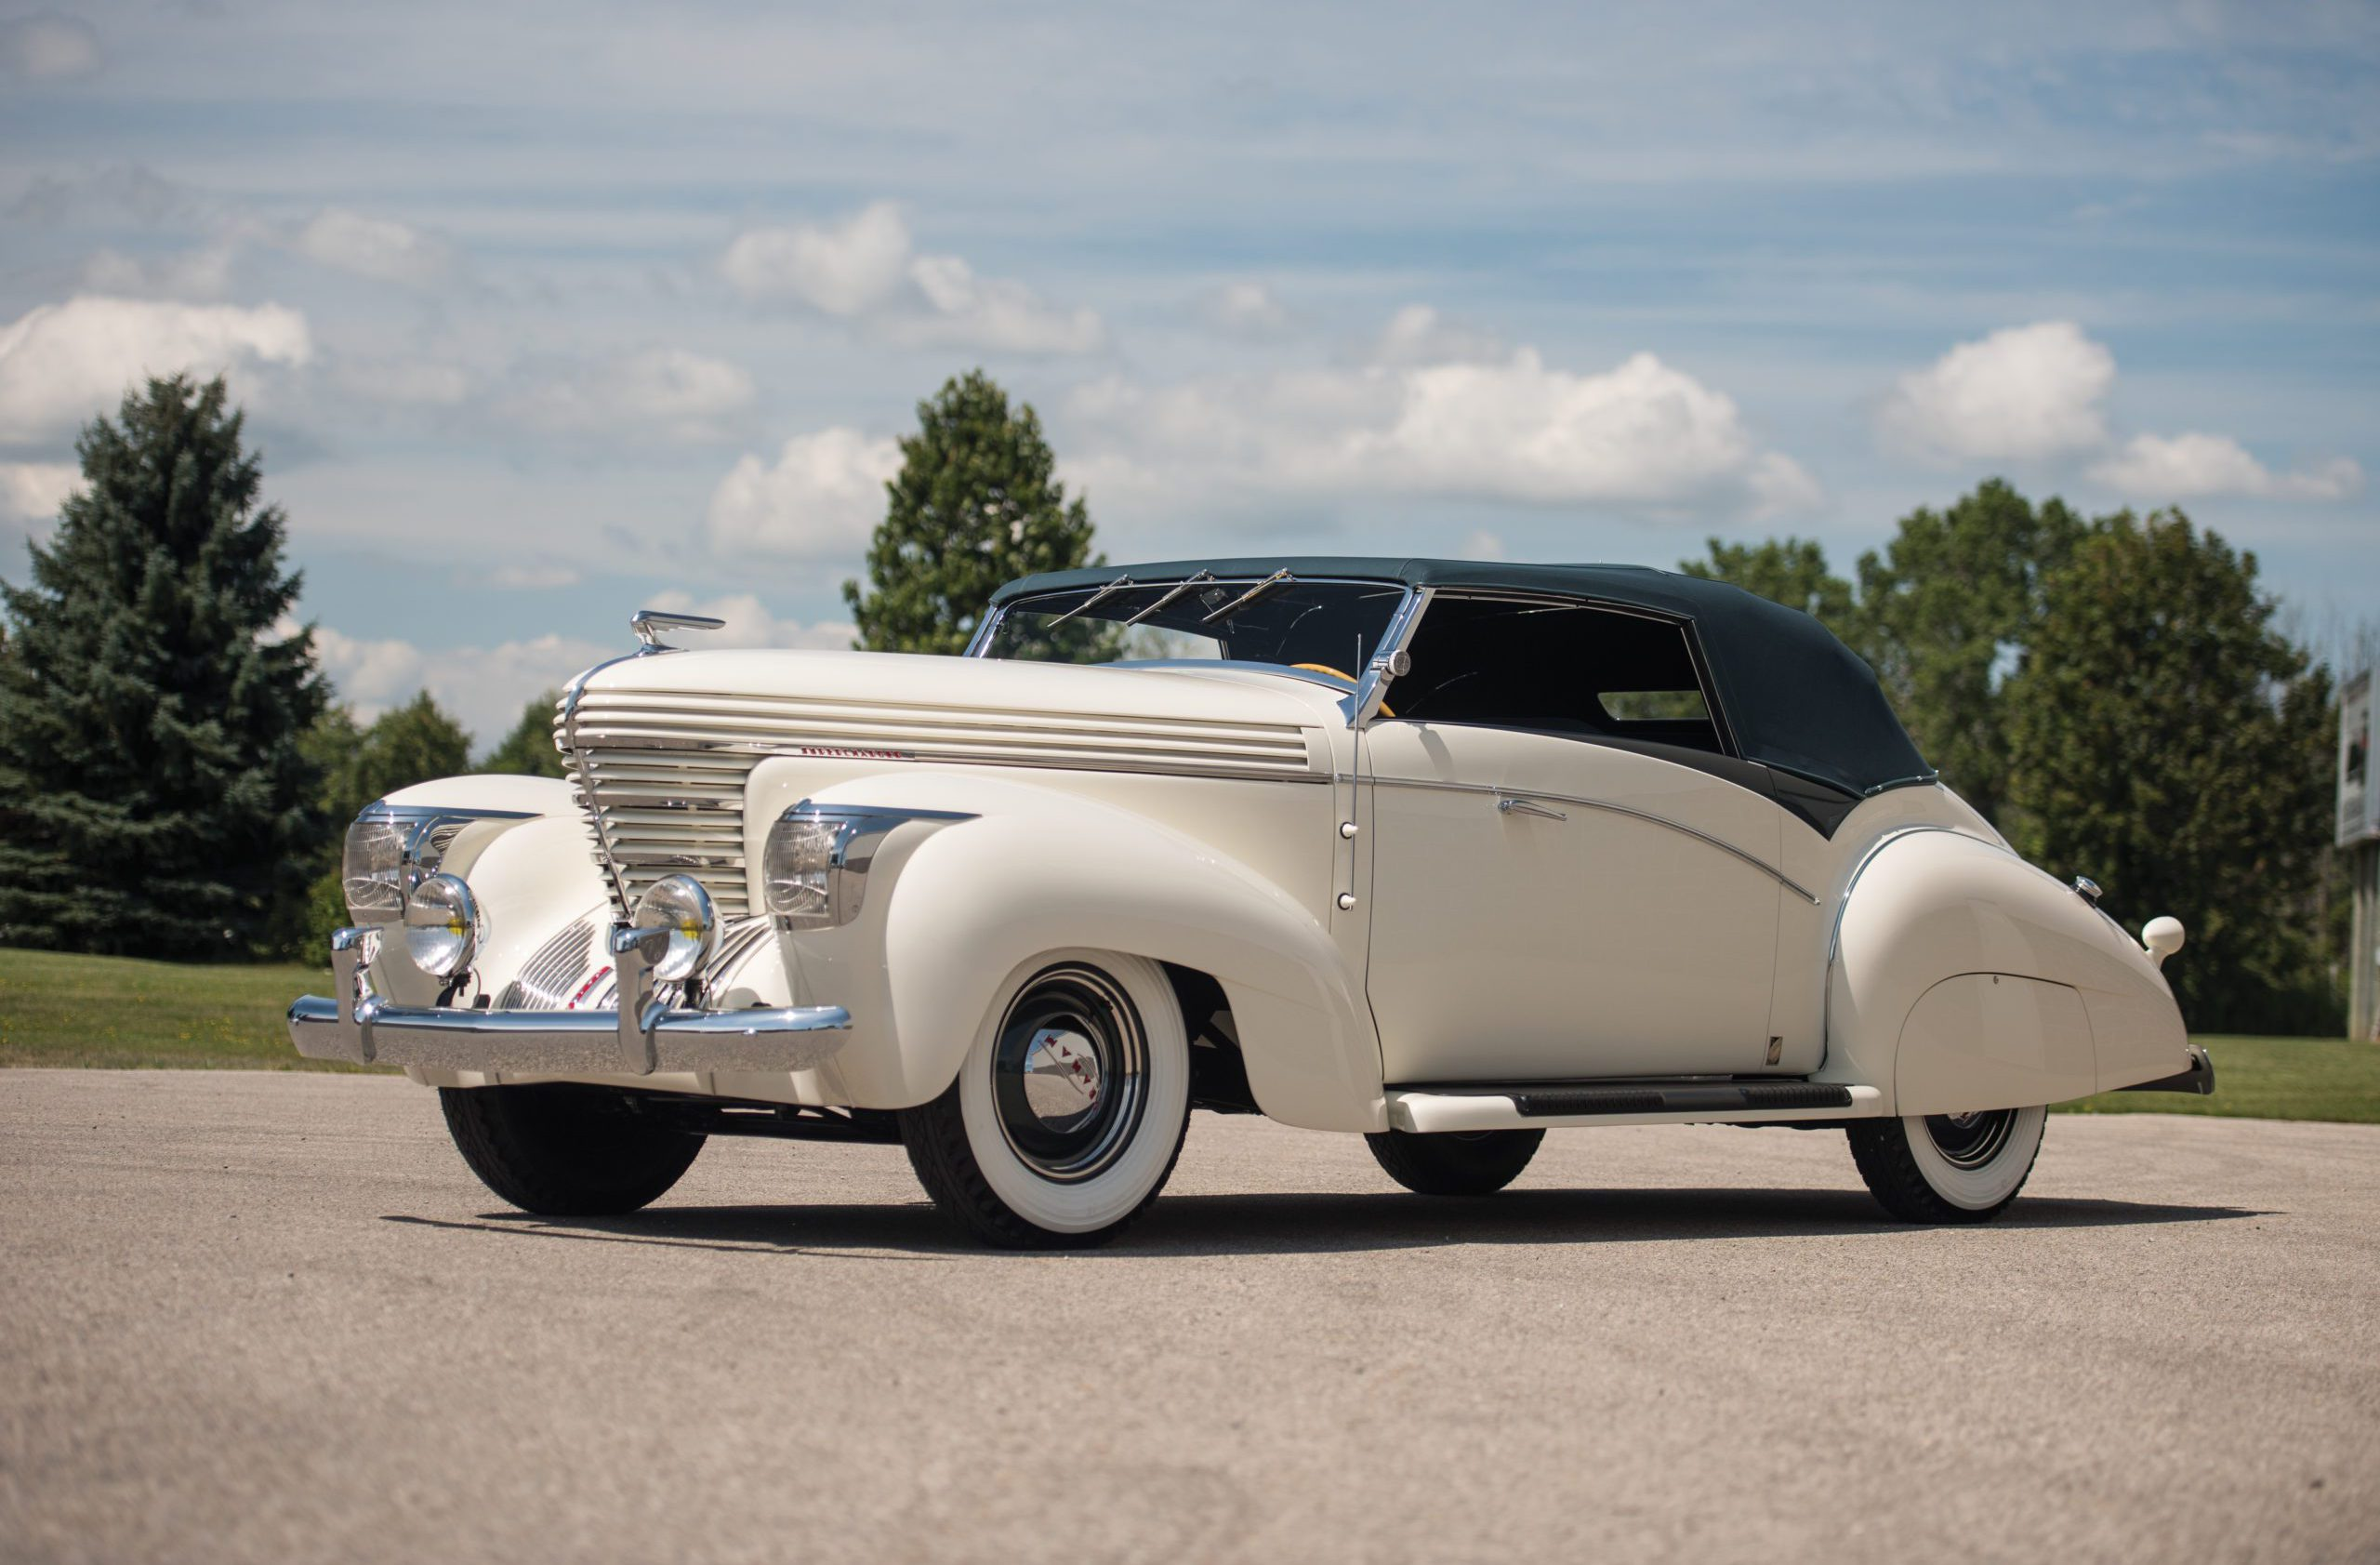 1938 Graham-Paige Model 97 Supercharged Cabriolet by Saoutchik